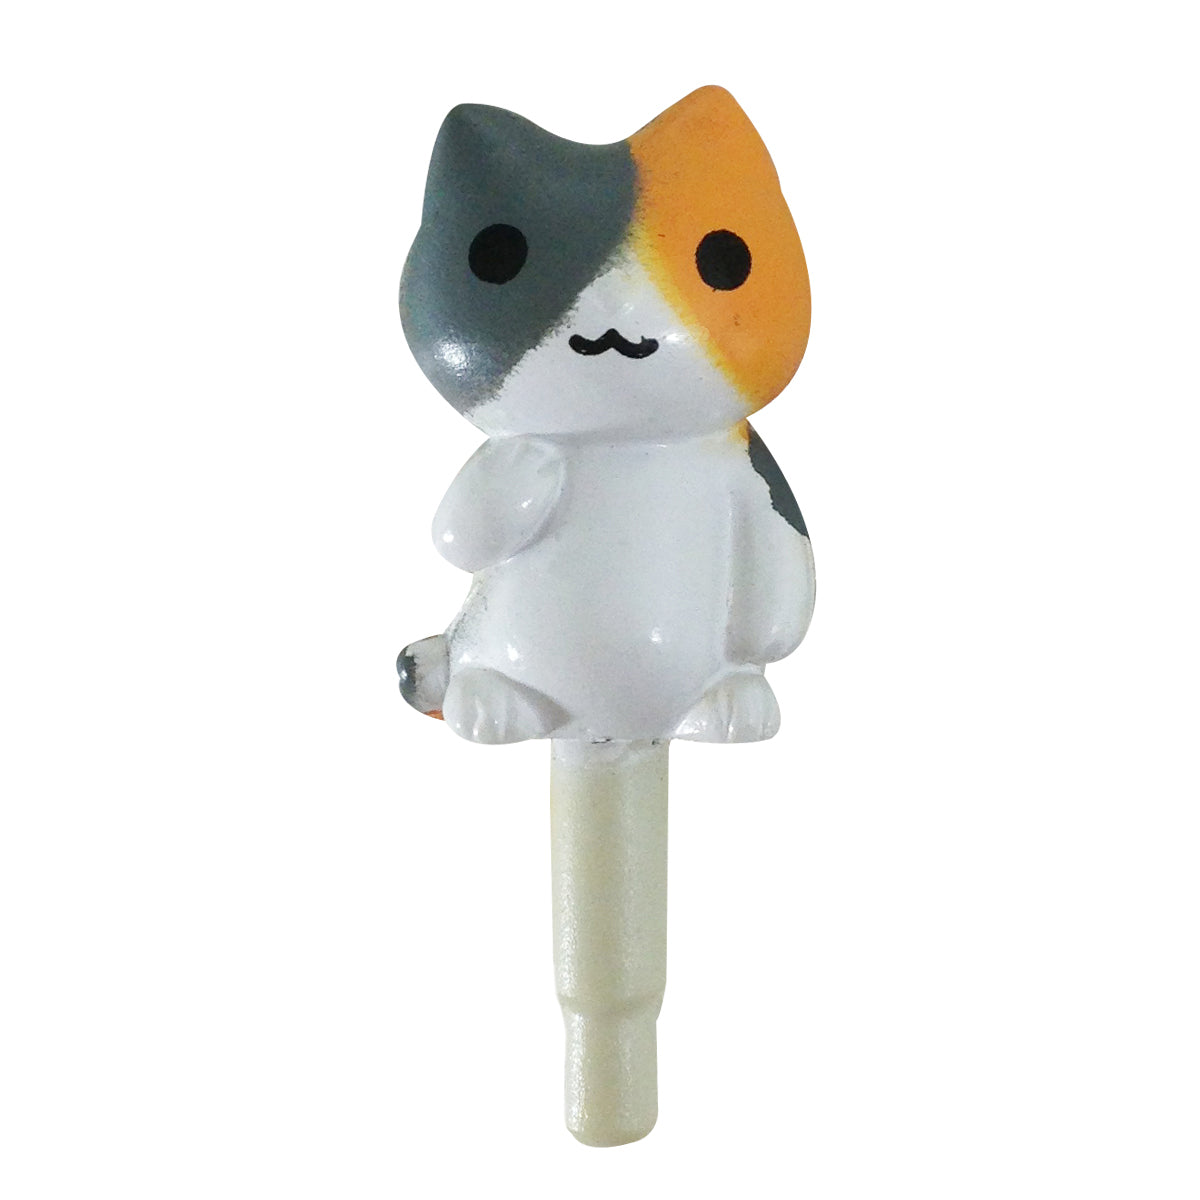 Anti-dust Cutie Cat Plug for Cellphone